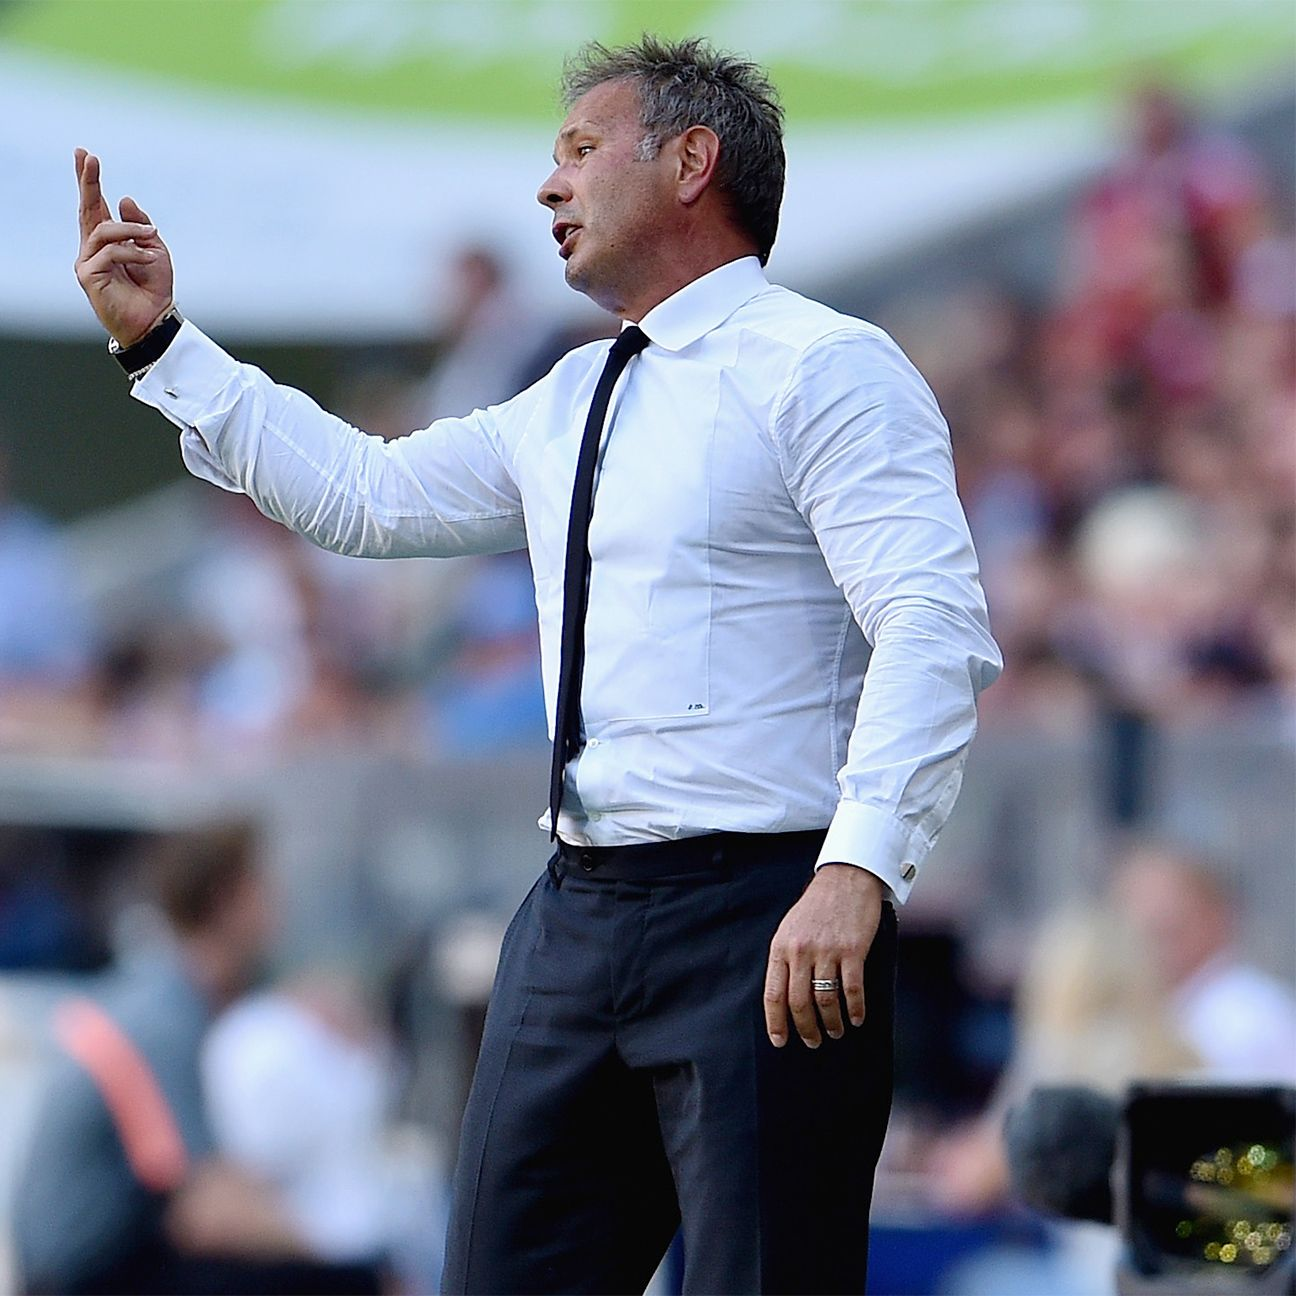 The heat is on manager Sinisa Mihajlovic to turn things around at Milan.